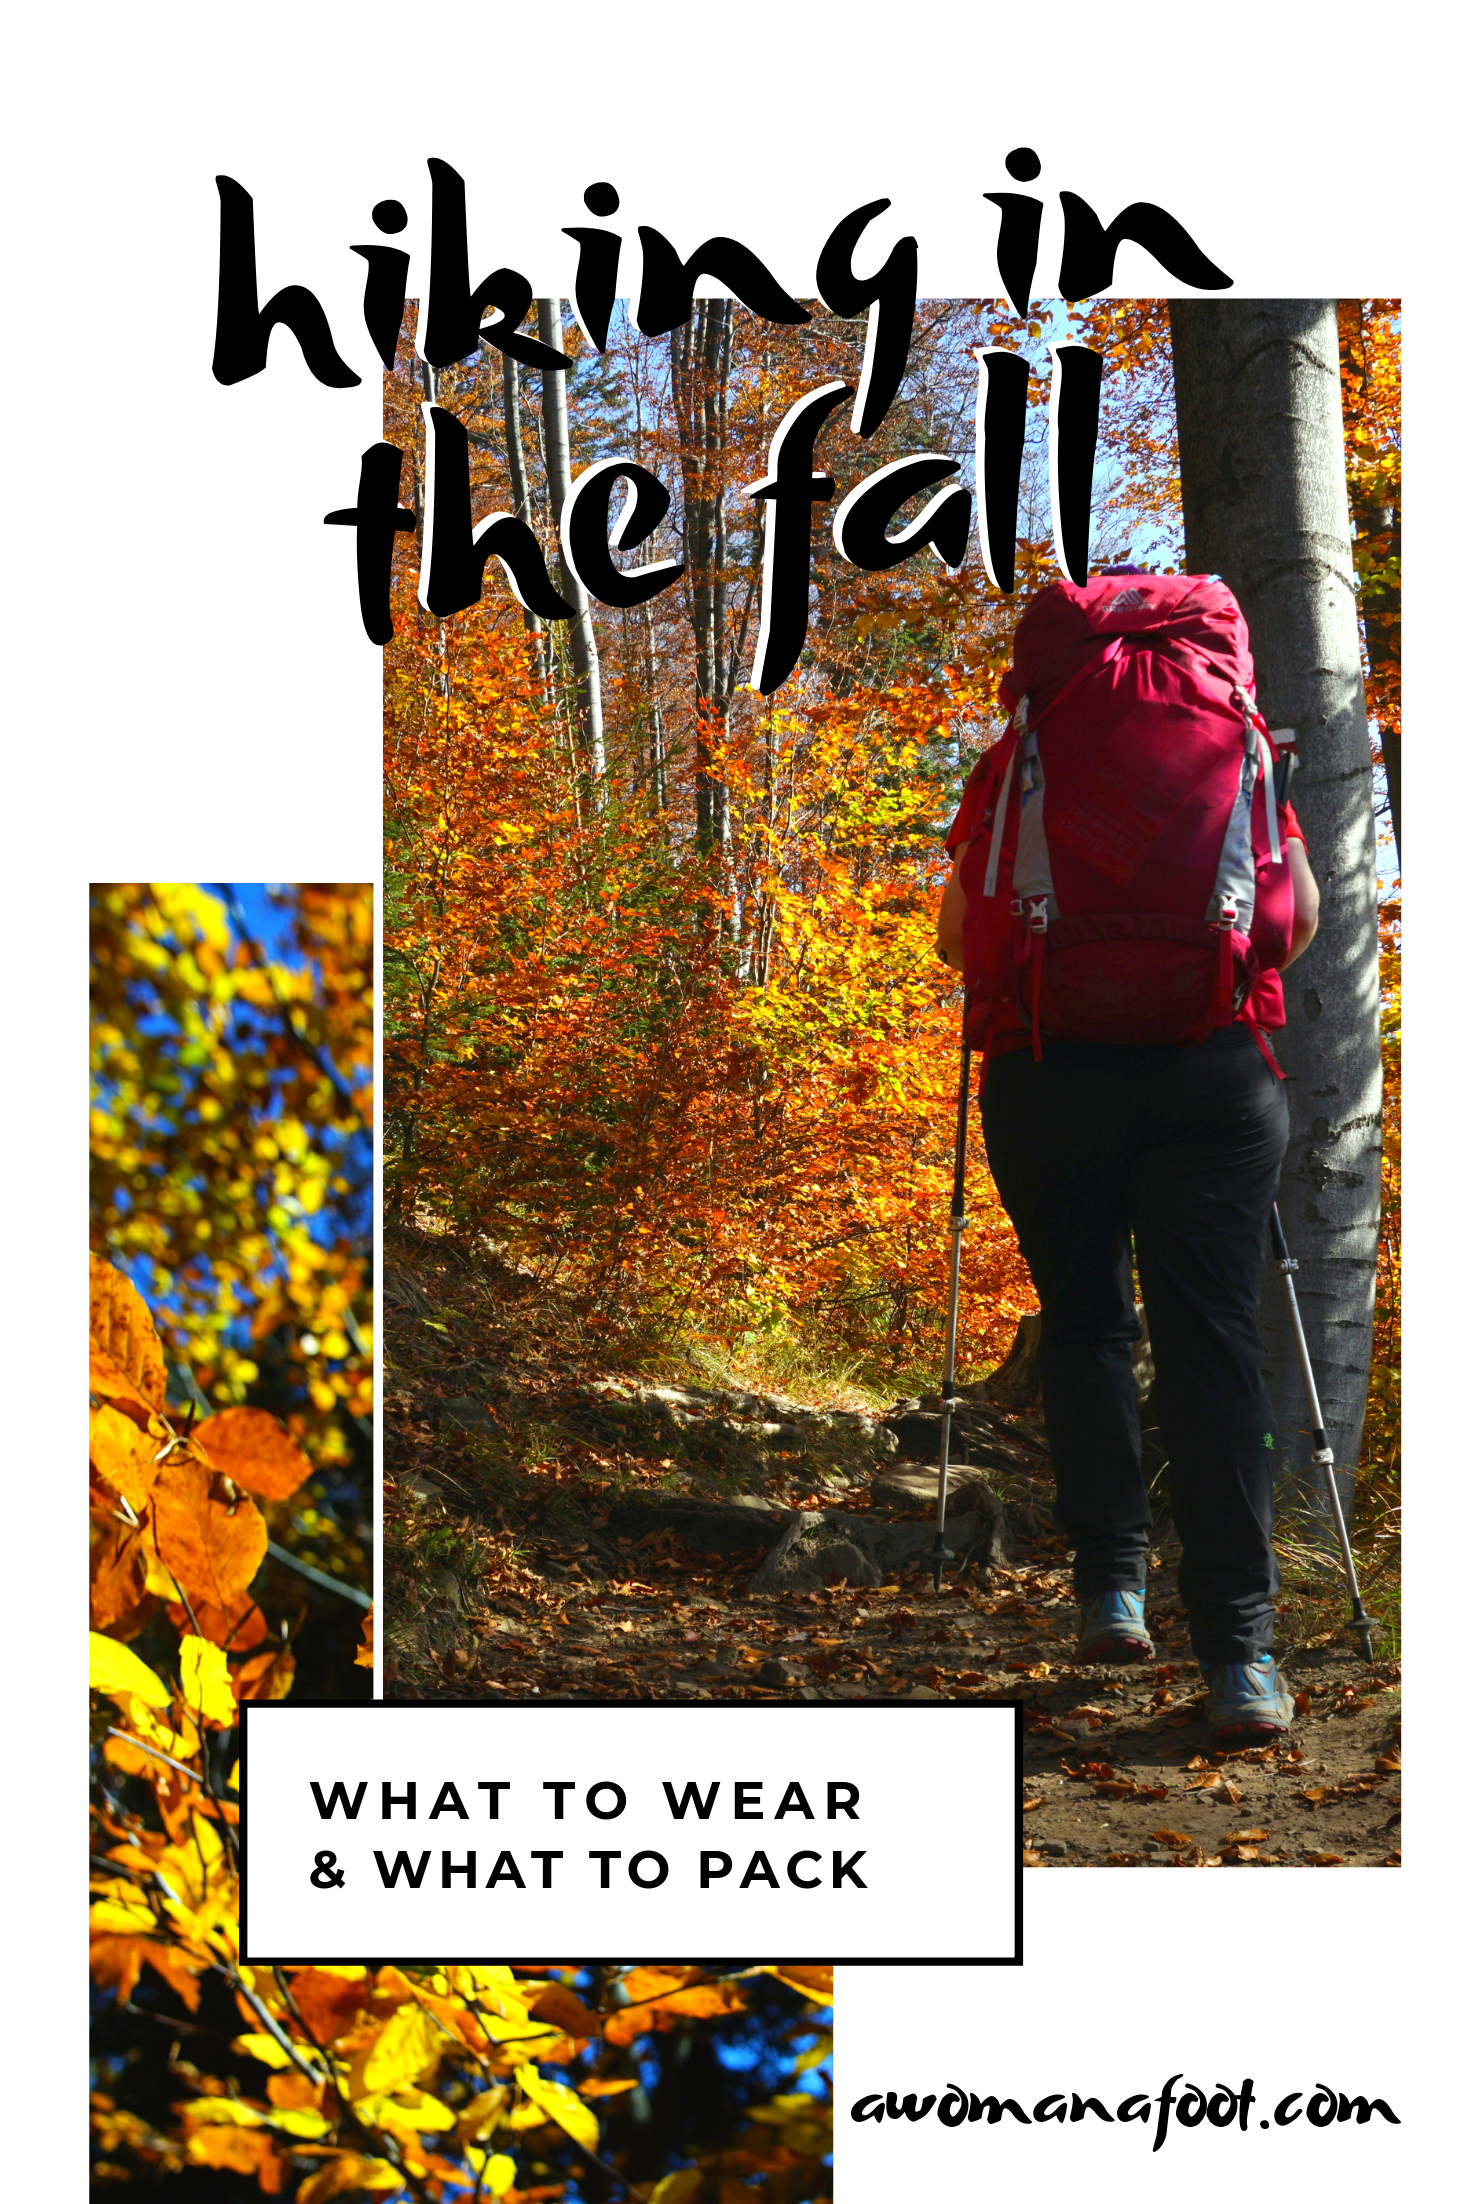 Fall hiking? Check what to wear and what to pack for an awesome and safe adventure through fall foliage. Learn more @awomanafoot.com | What I need for hiking in the fall | Hiking Safety | Hiking Attire | Hiking Equipment | Outdoors | What to wear hiking in the fall | #hiking #fall #hikingclothes #hikingear #trekking #autumn #fallhiking What do you need for hiking in fall? What gear to pack for backpacking in cold weather? Hiking attire and gear |